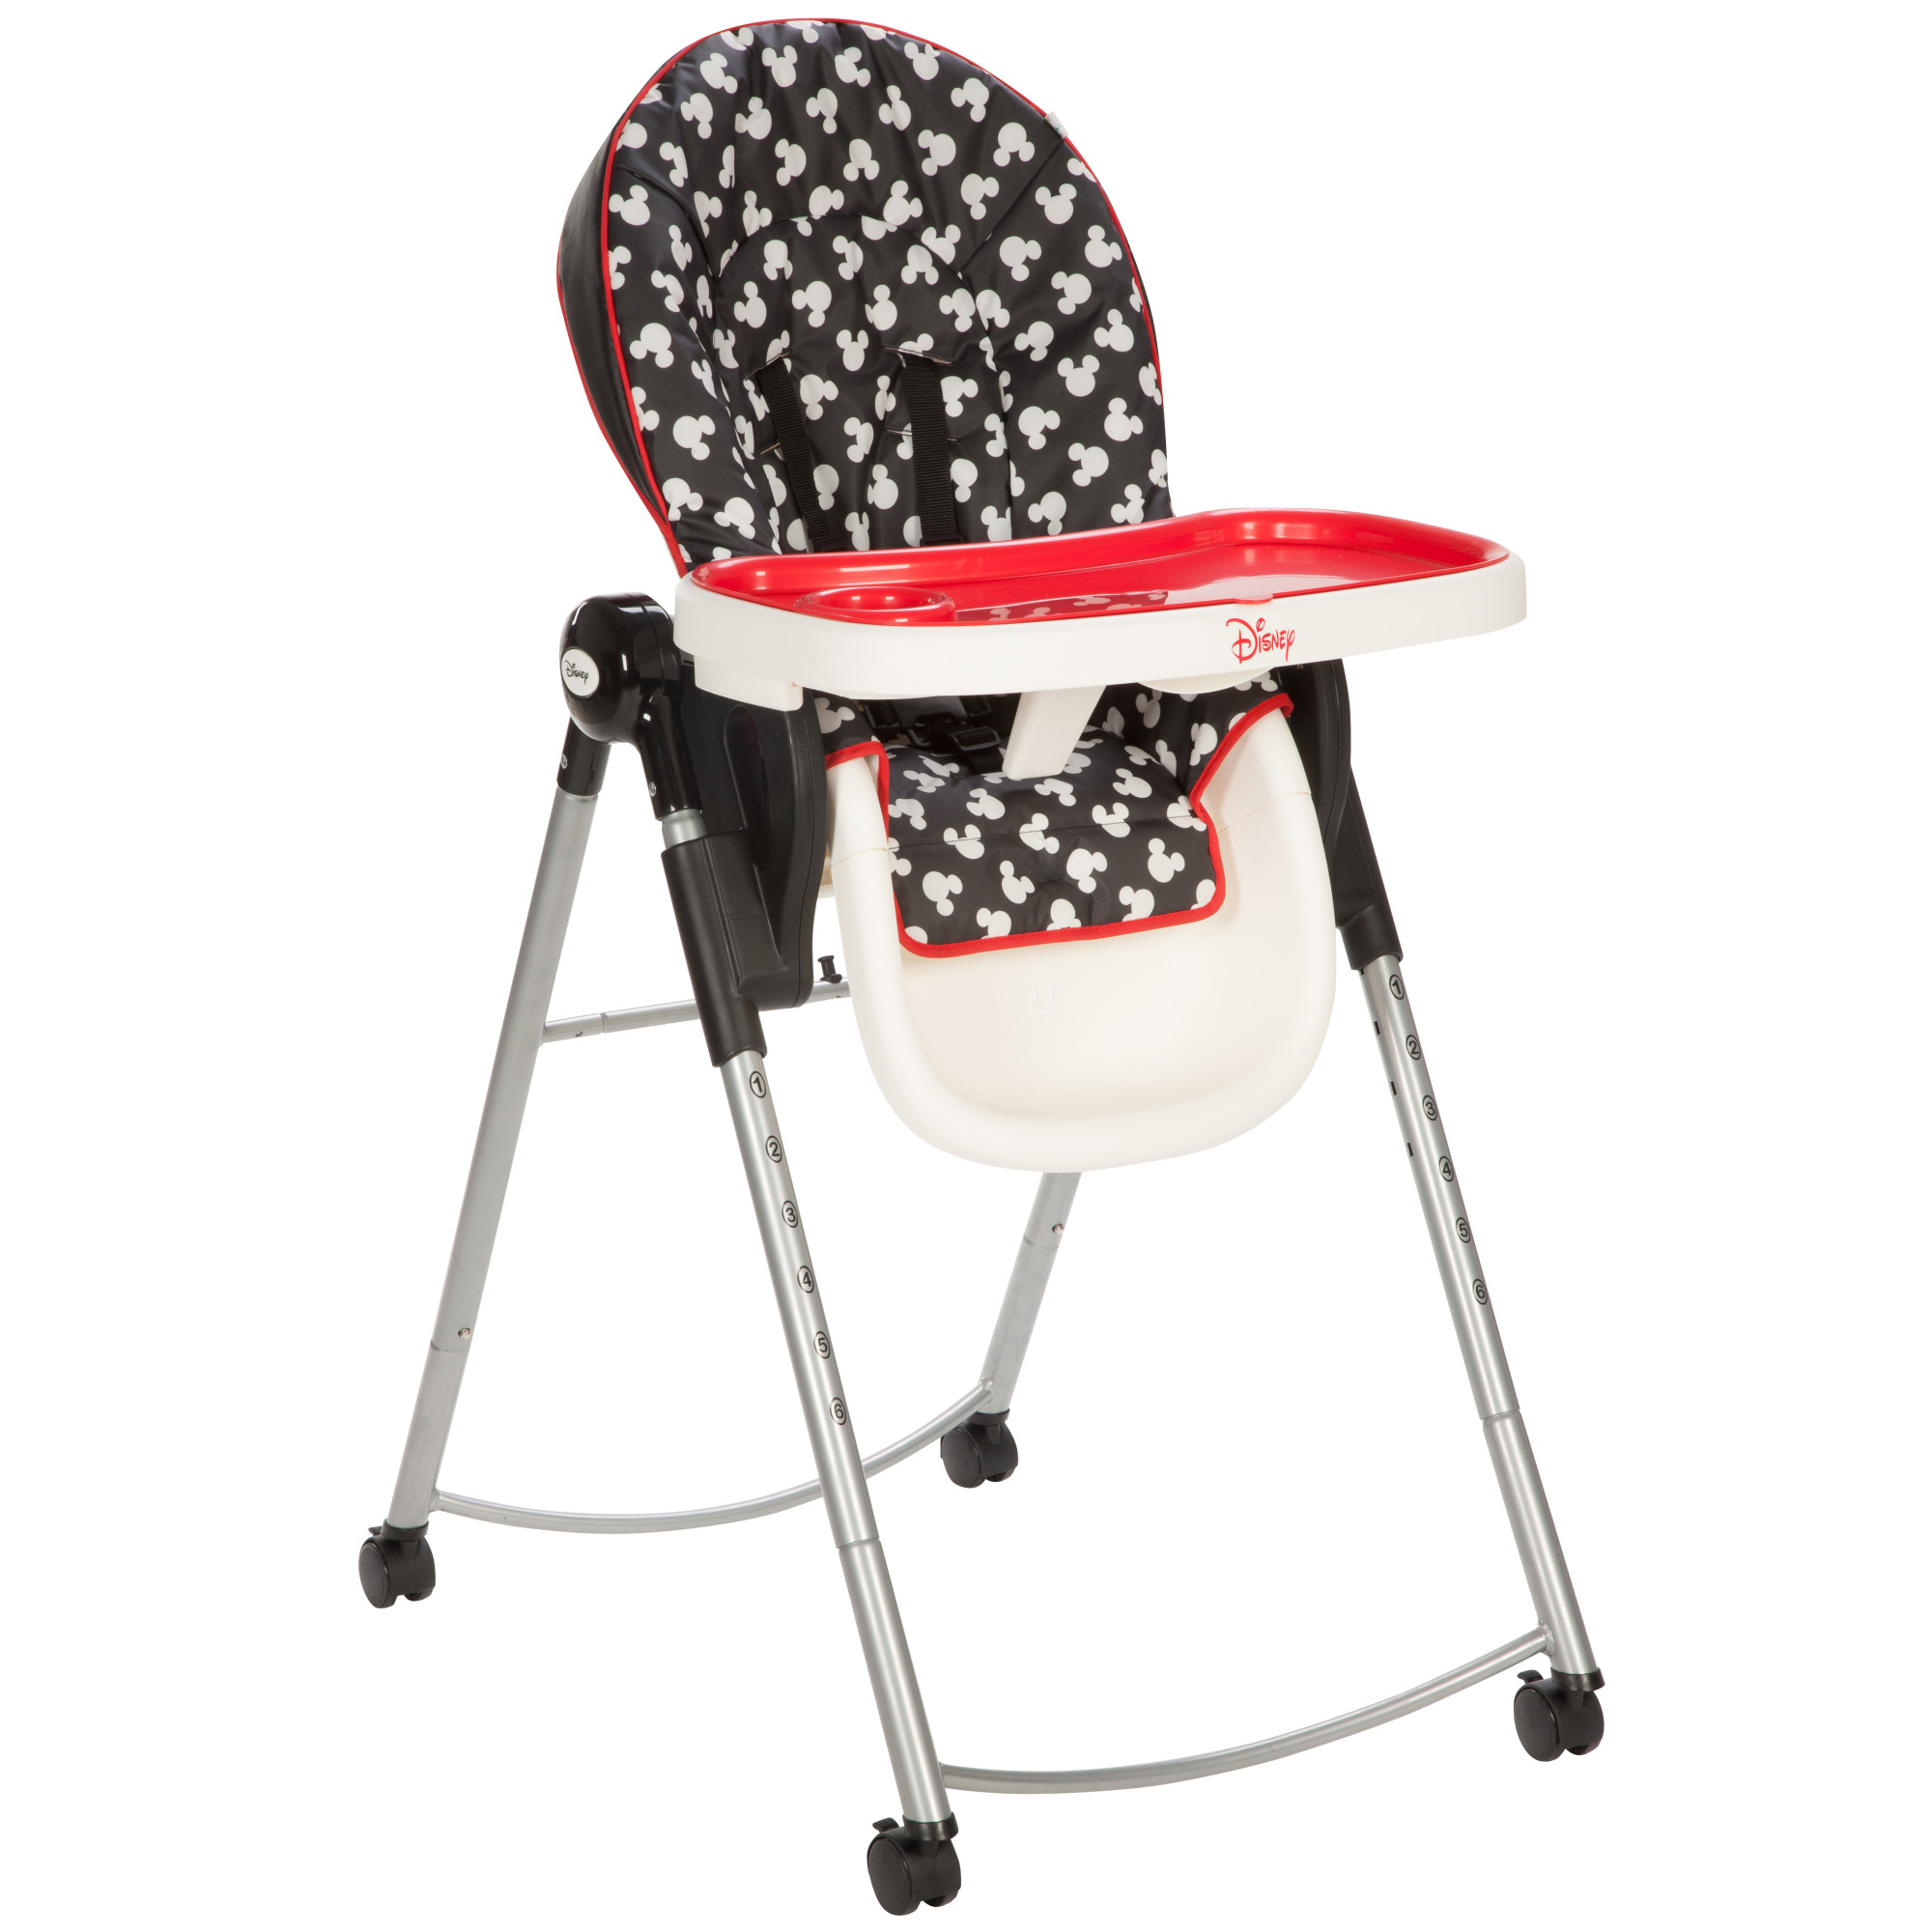 Mickey Mouse Chairs For Toddlers Mickey Mouse Furniture For Adults Tyres2c